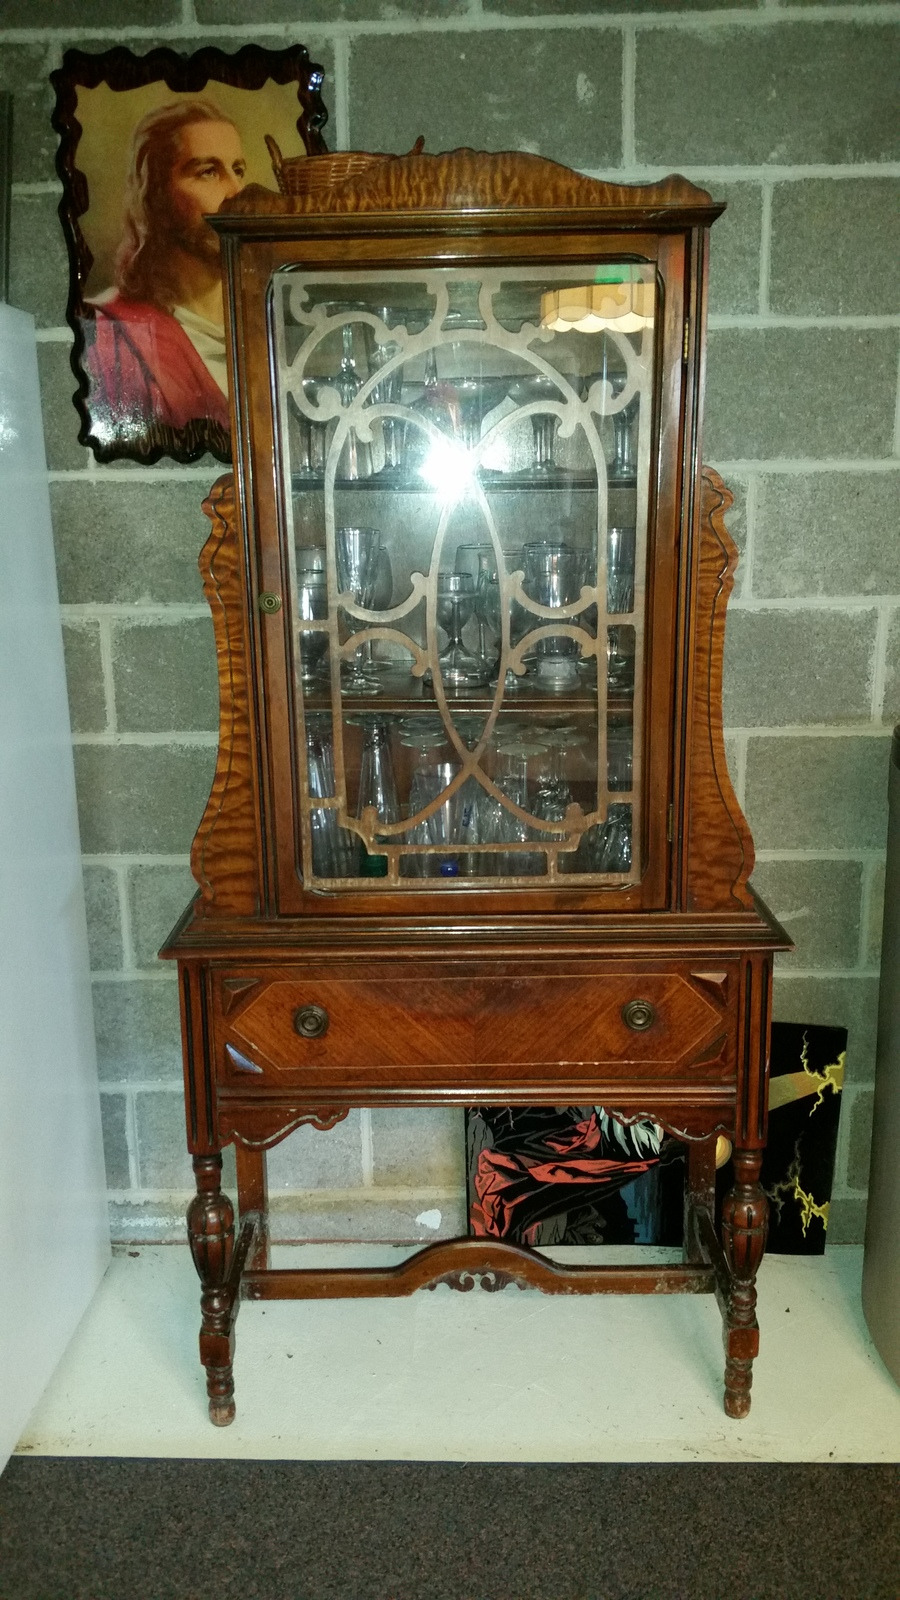 How Much is My Antique Furniture Worth Inspirational I Have A China Cabinet Need to Know How Much is Worth Do